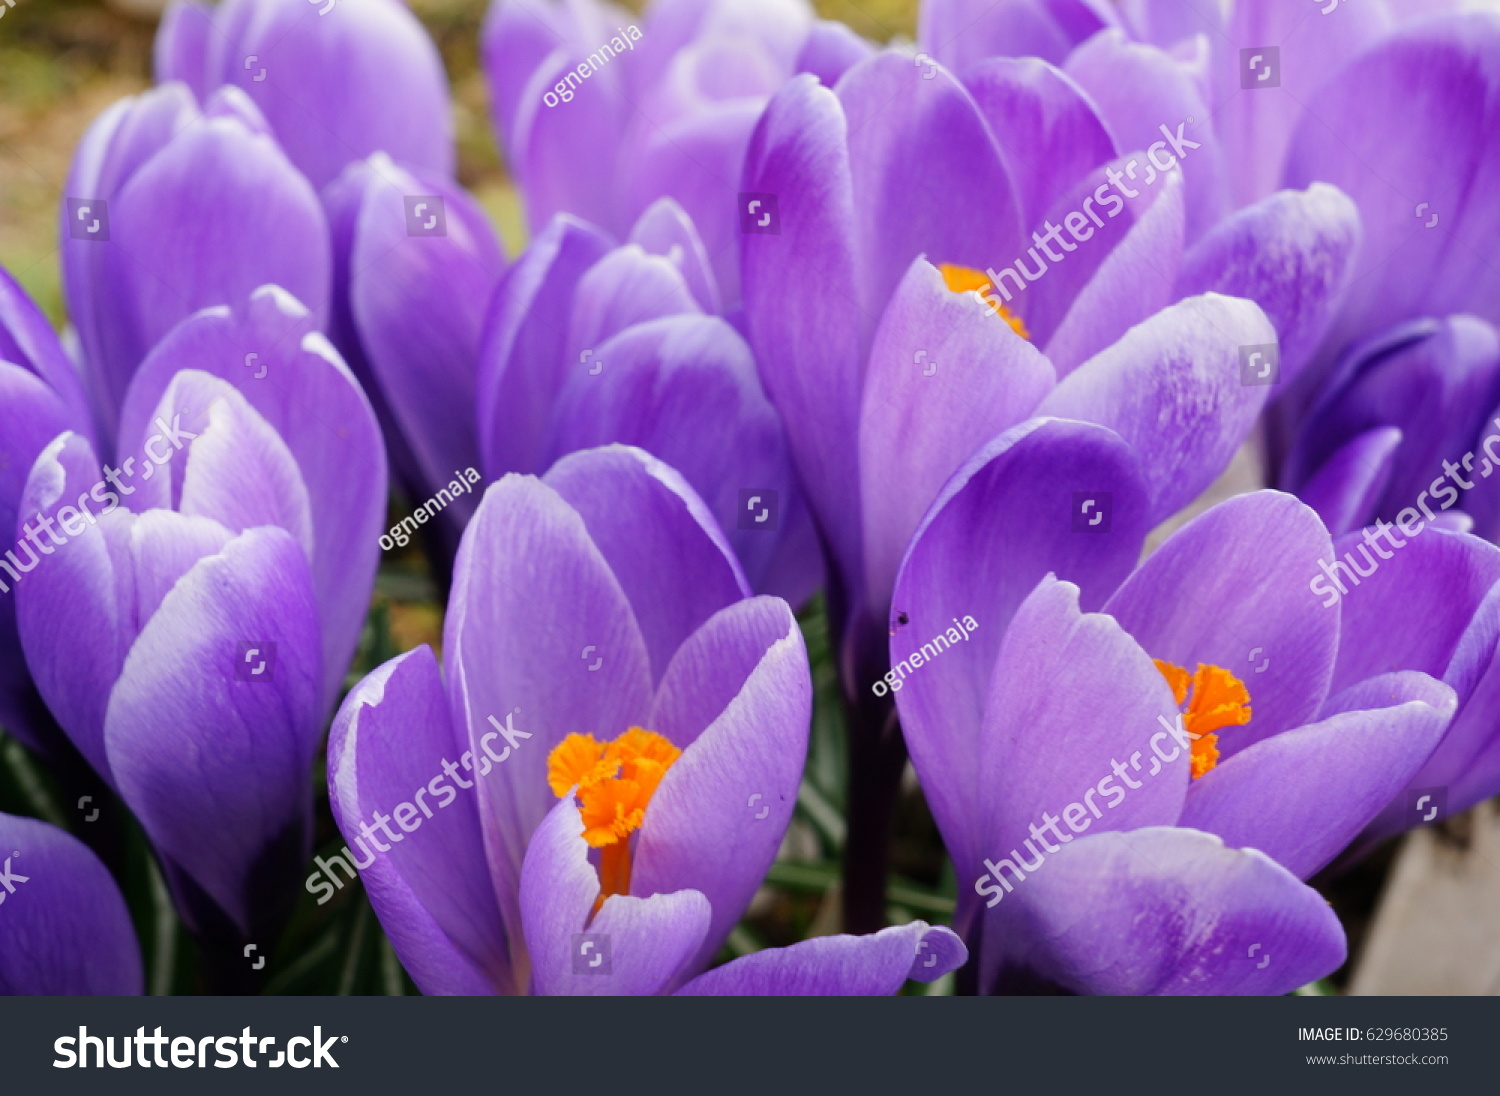 Spring first tender lilac crocuses blossomed stock photo 629680385 in the spring the first tender lilac crocuses blossomed saffron a symbol of hope buycottarizona Image collections